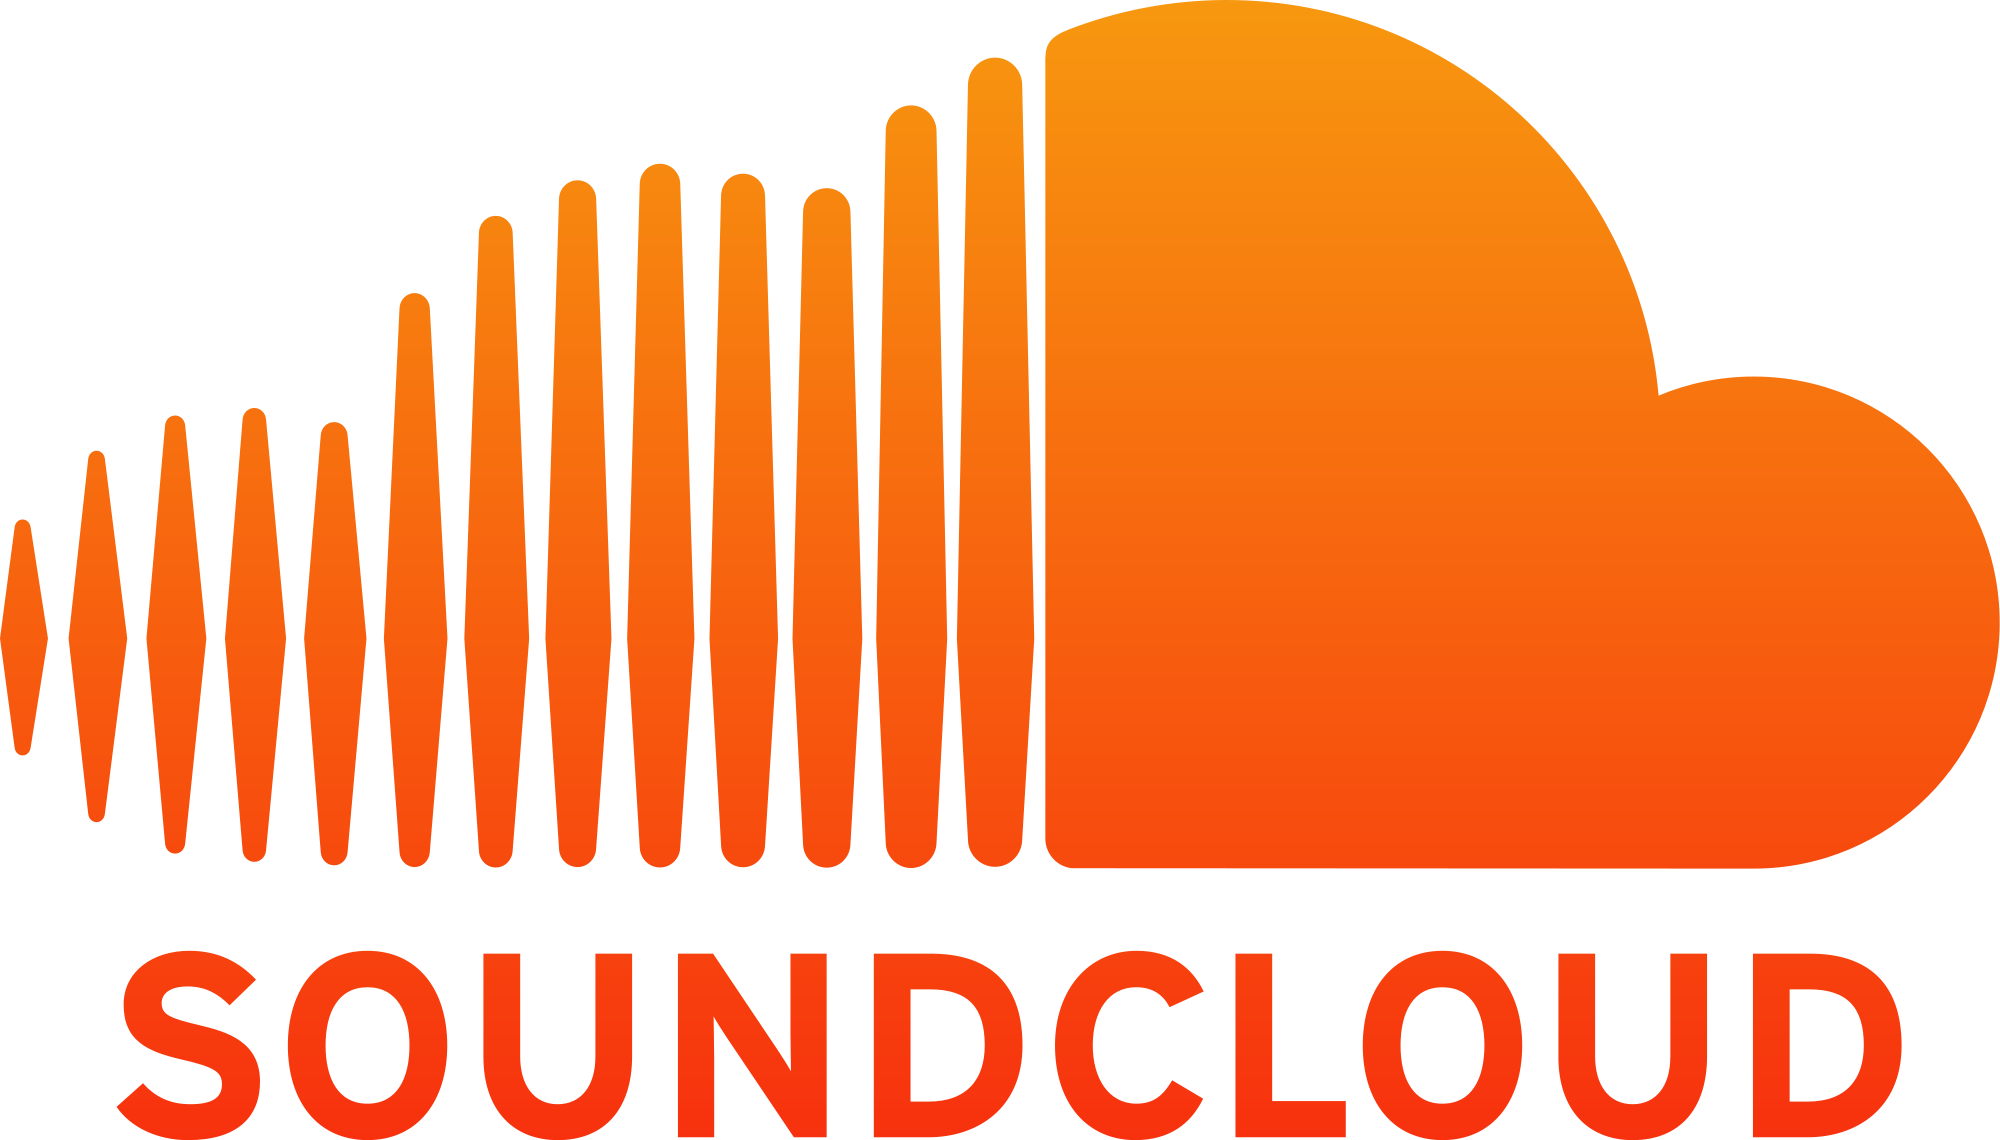 Media: SoundCloud_logo.png